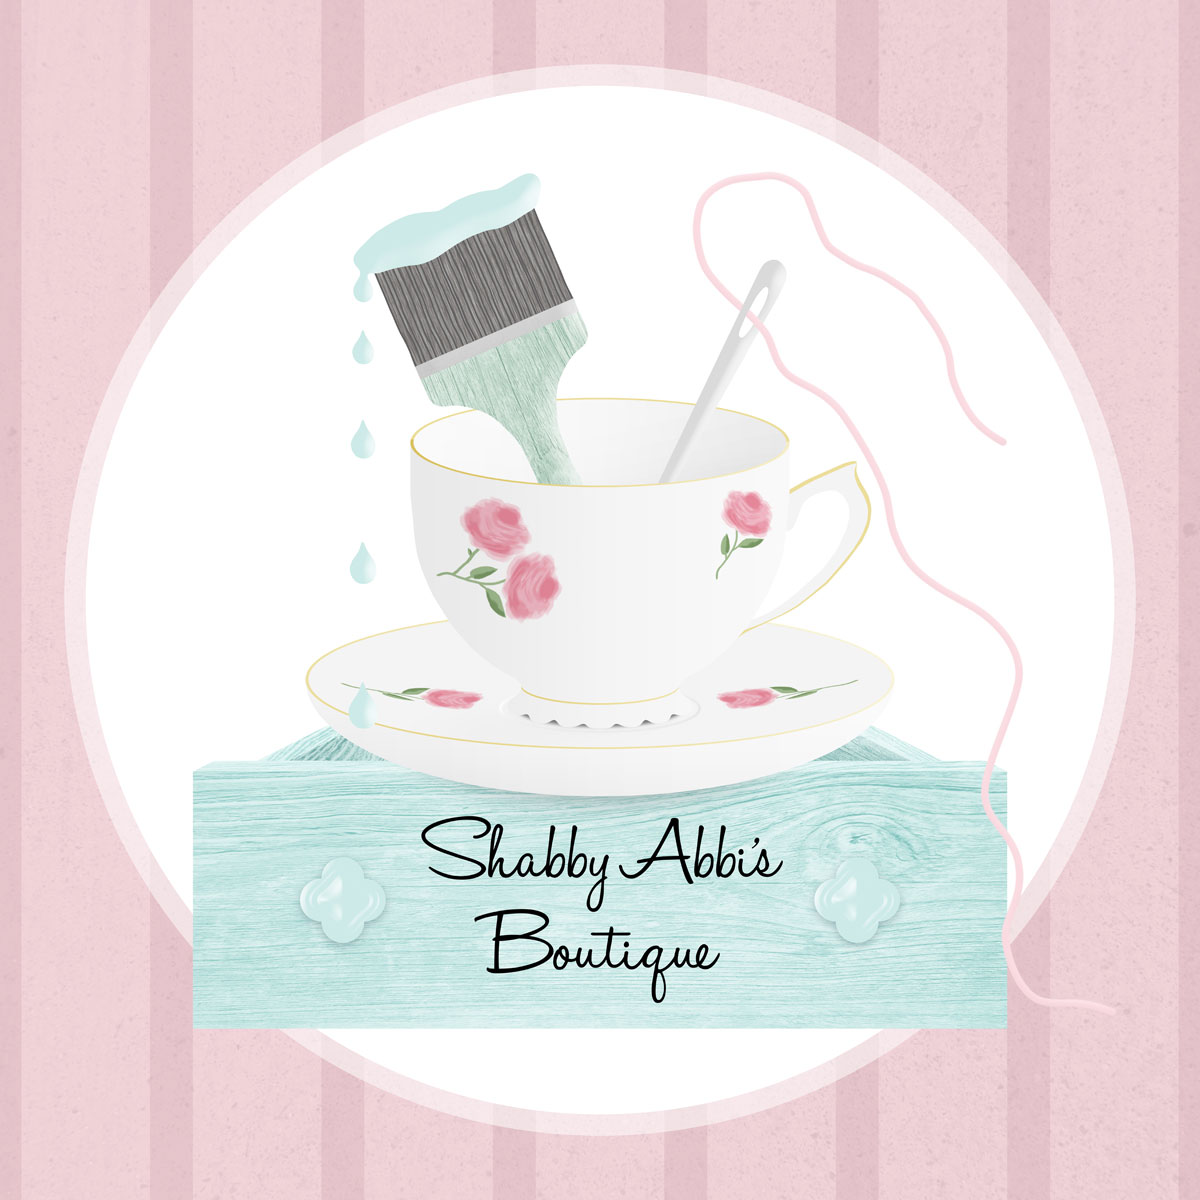 Shabby Abbi's Boutique - Vintage Business Logo - logo design by PixelDuck